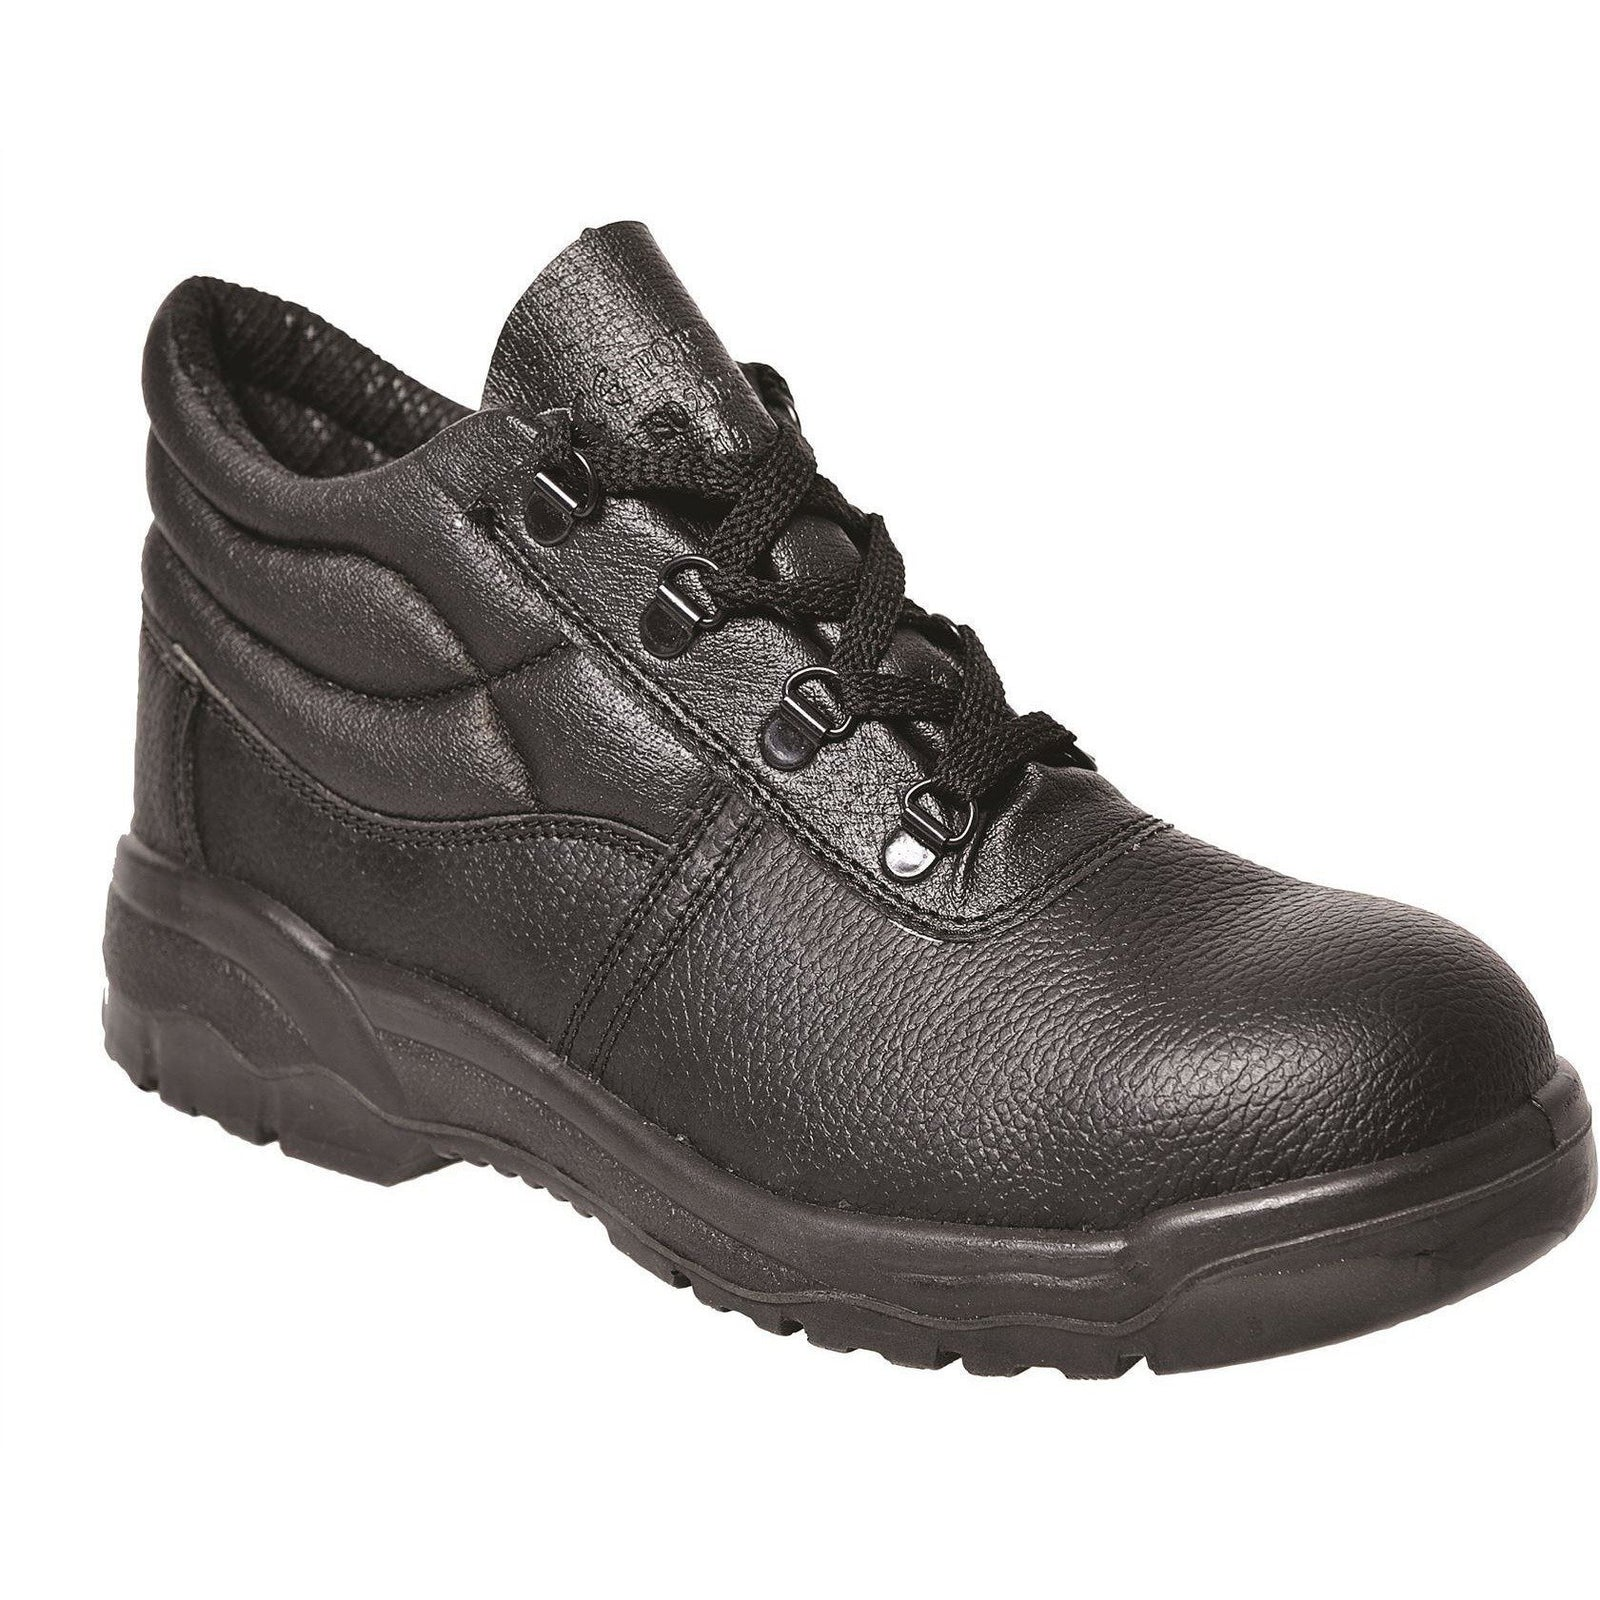 Portwest Steelite Protector Boot S1P FW10 - reid outdoors